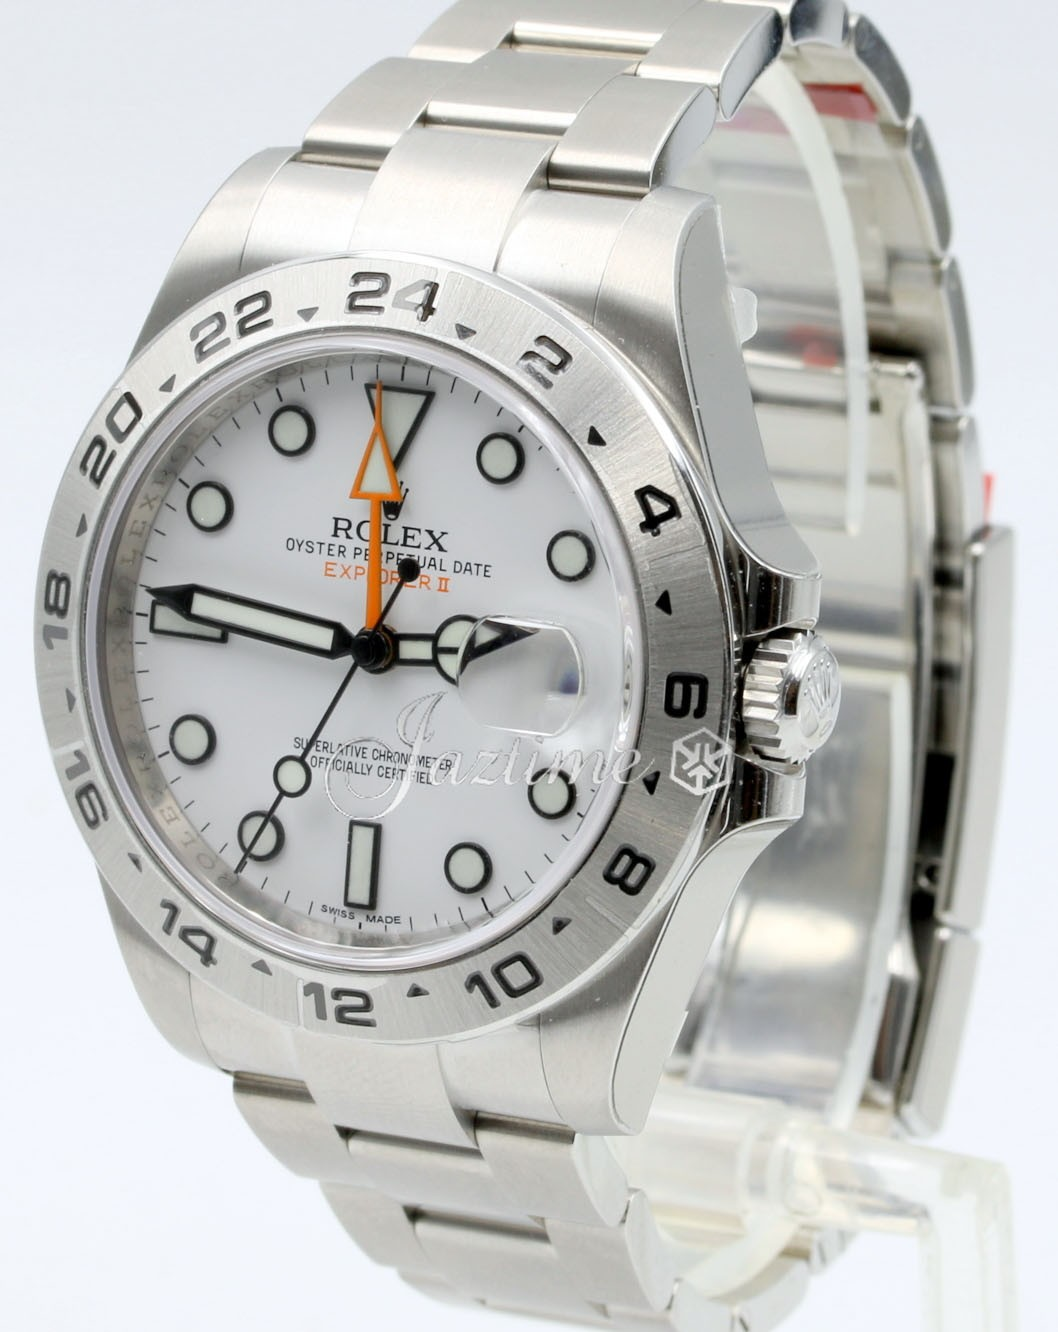 Rolex 216570 Explorer II White » for SALE